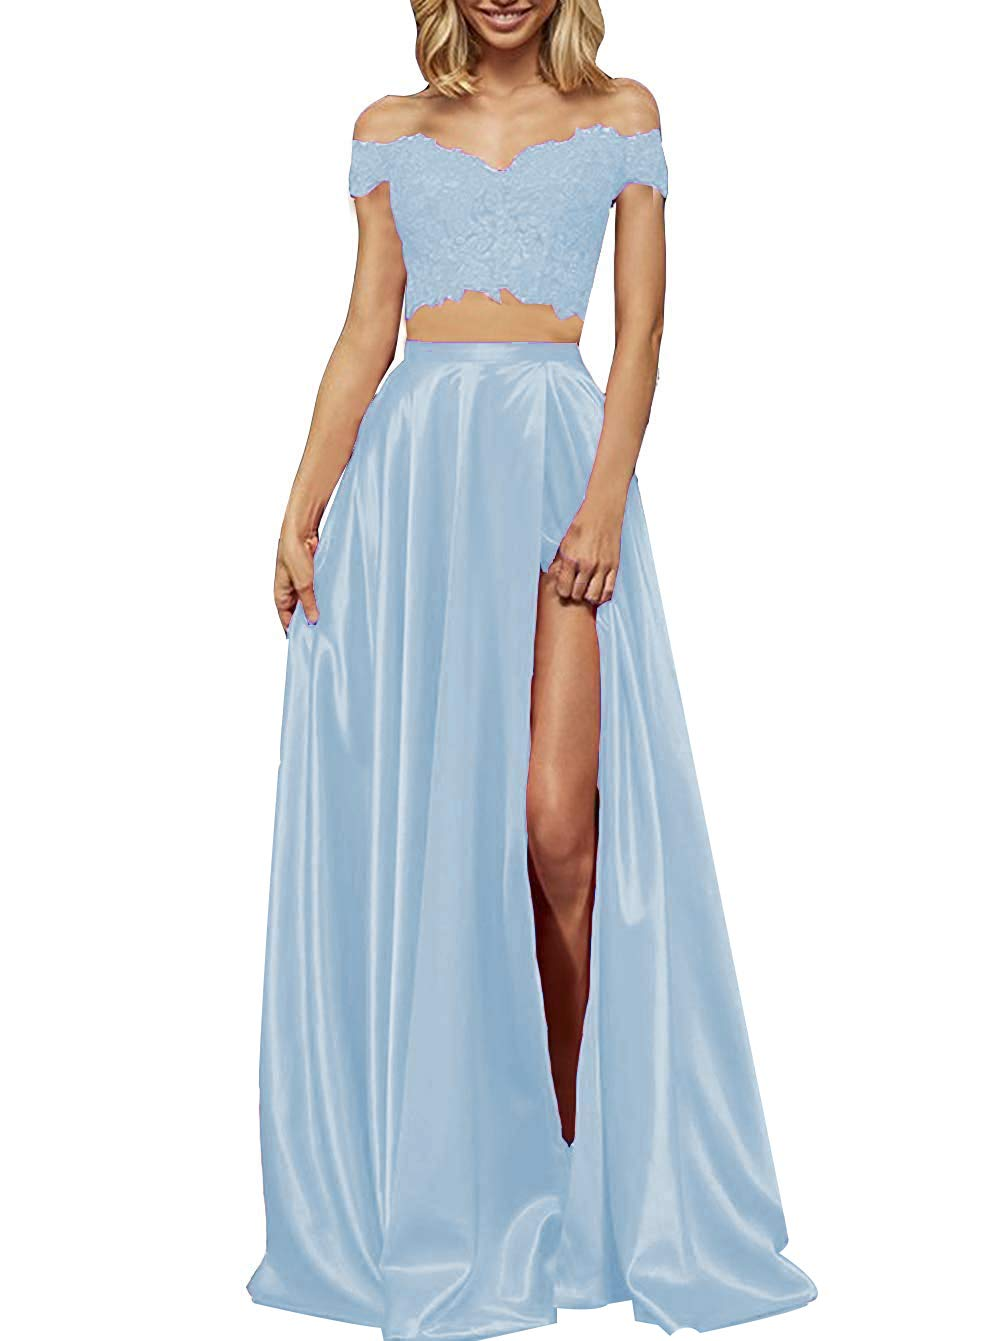 yinyyinhs Two Piece Prom Dresses Long